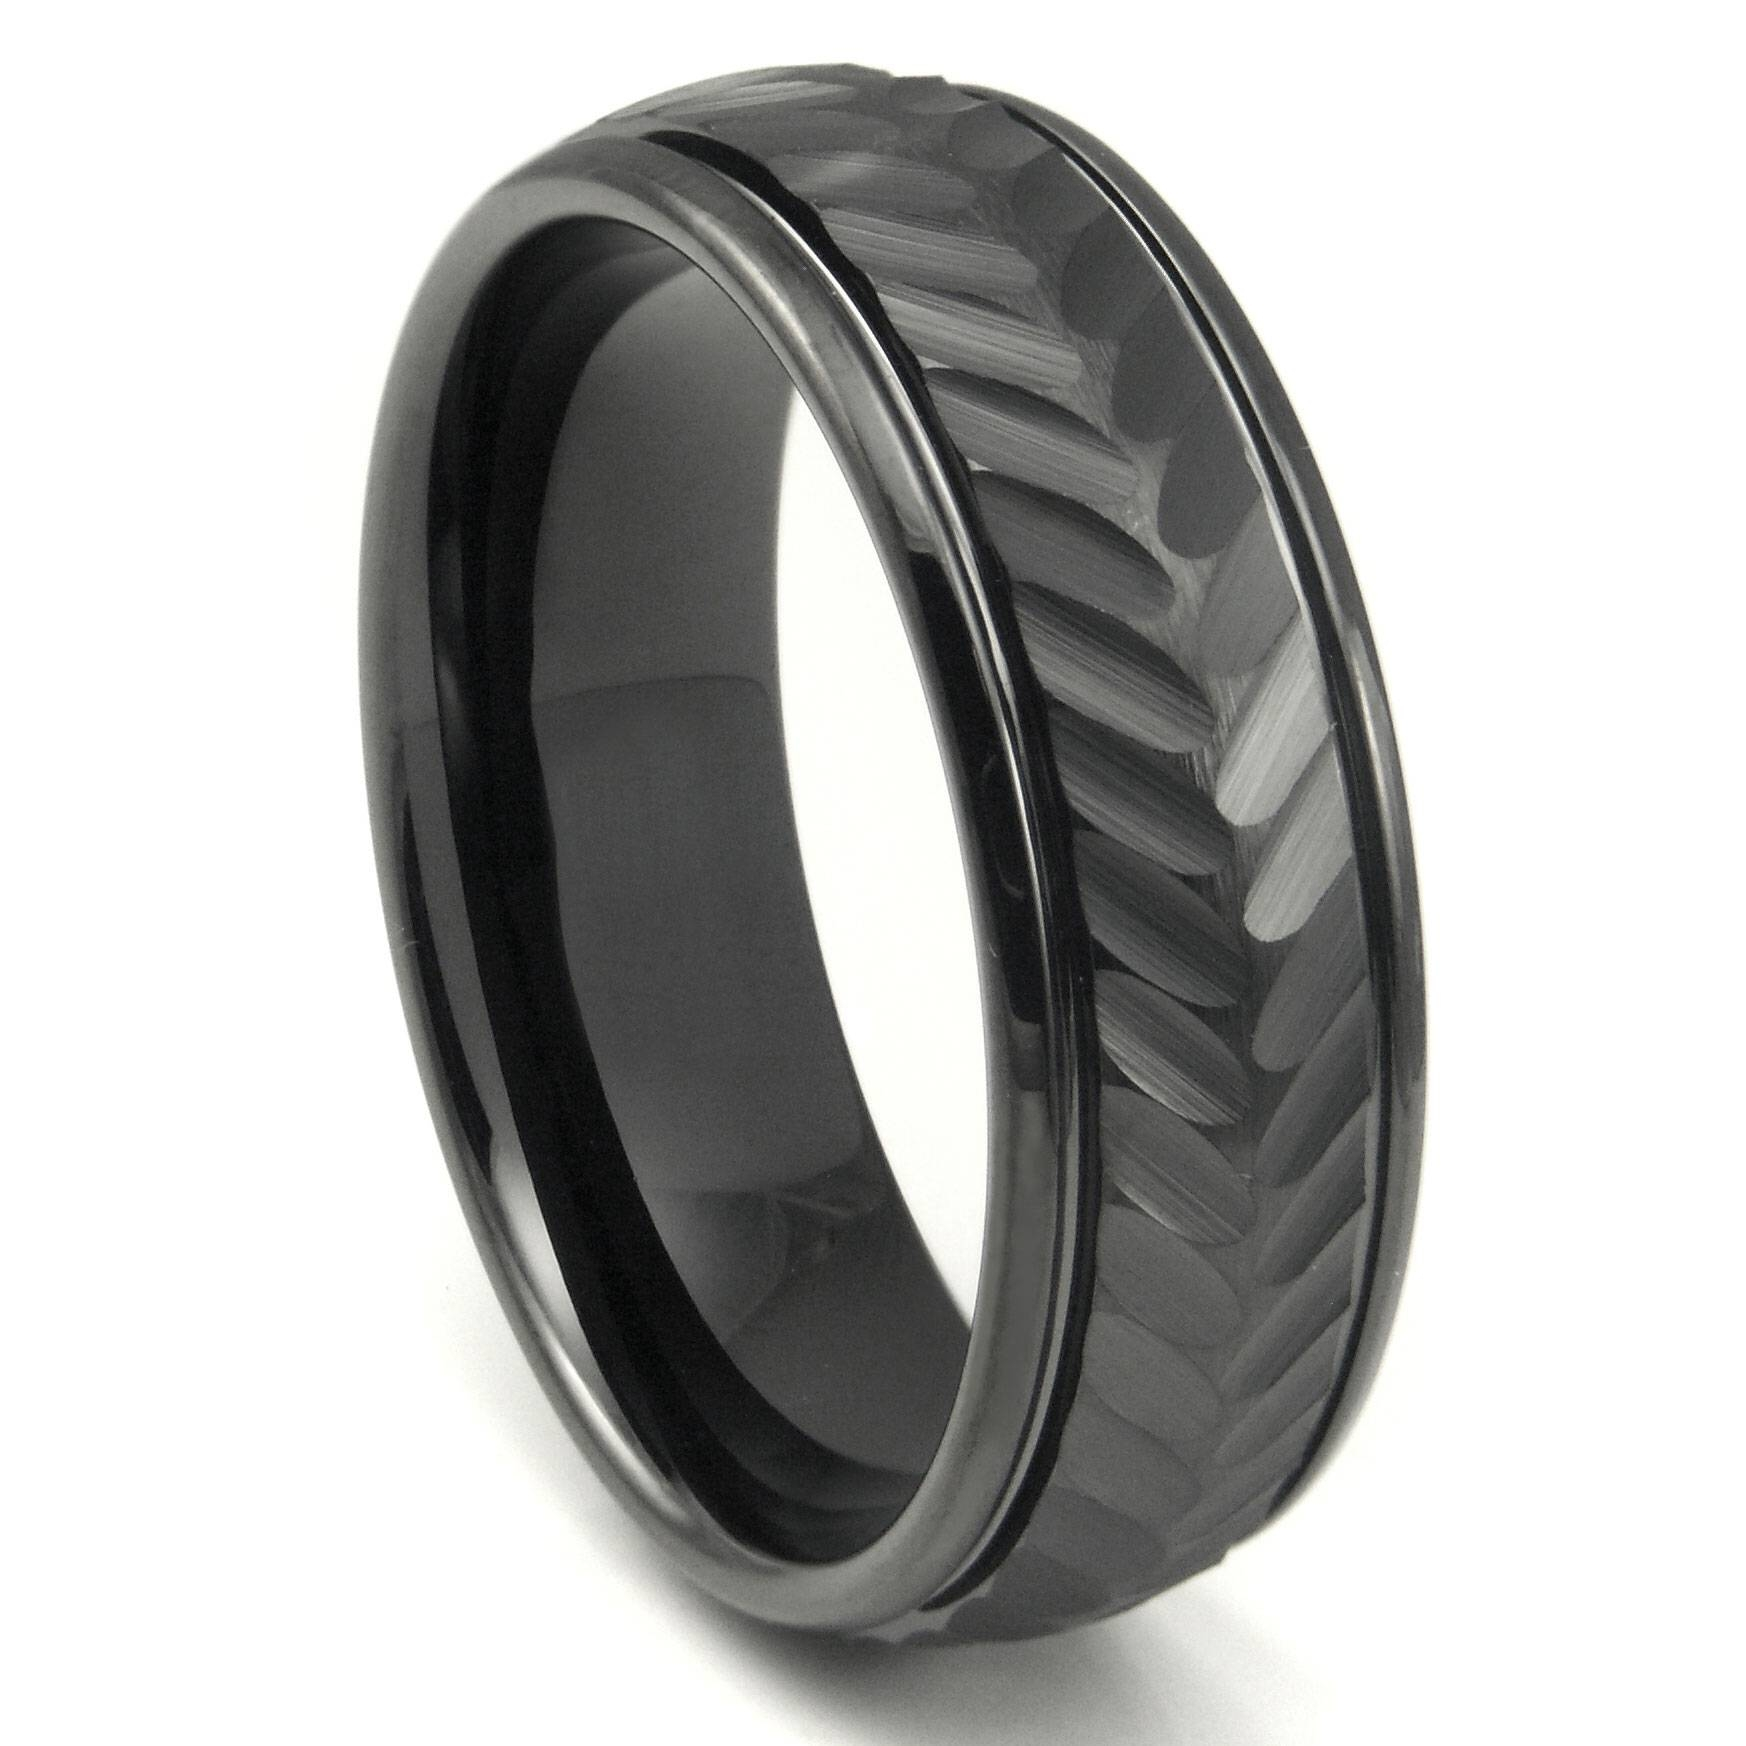 Black Tungsten Carbide 8Mm Chevron Newport Wedding Band Ring Throughout Tungsten Wedding Bands (Gallery 260 of 339)